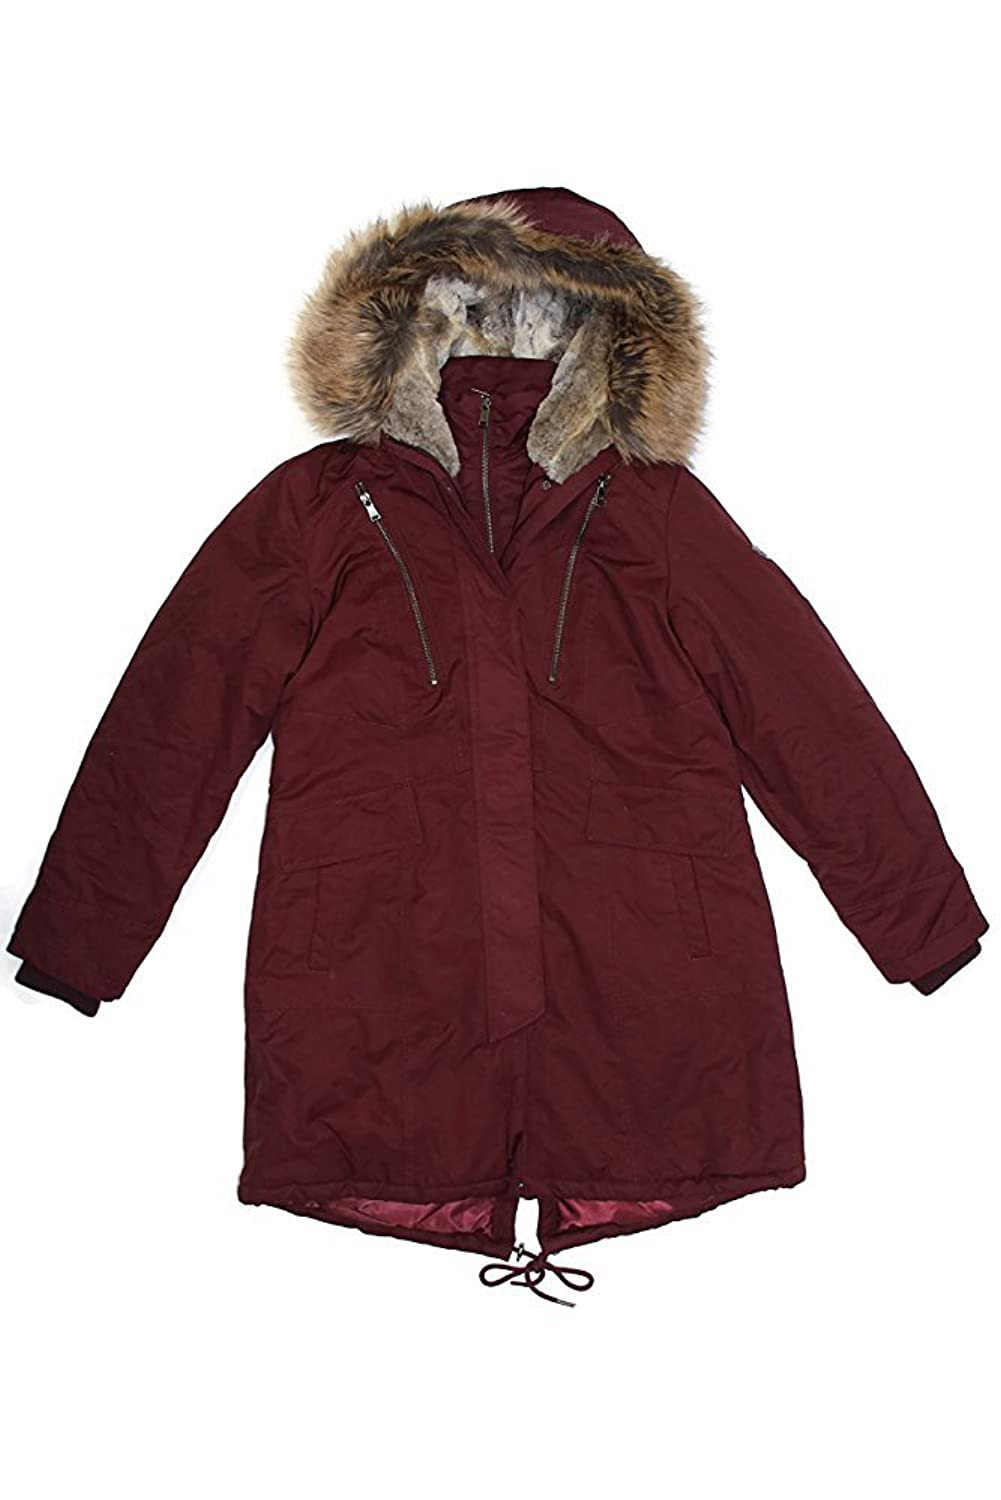 1 Madison Expedition Women's Faux Fur Hooded Parka Jacket